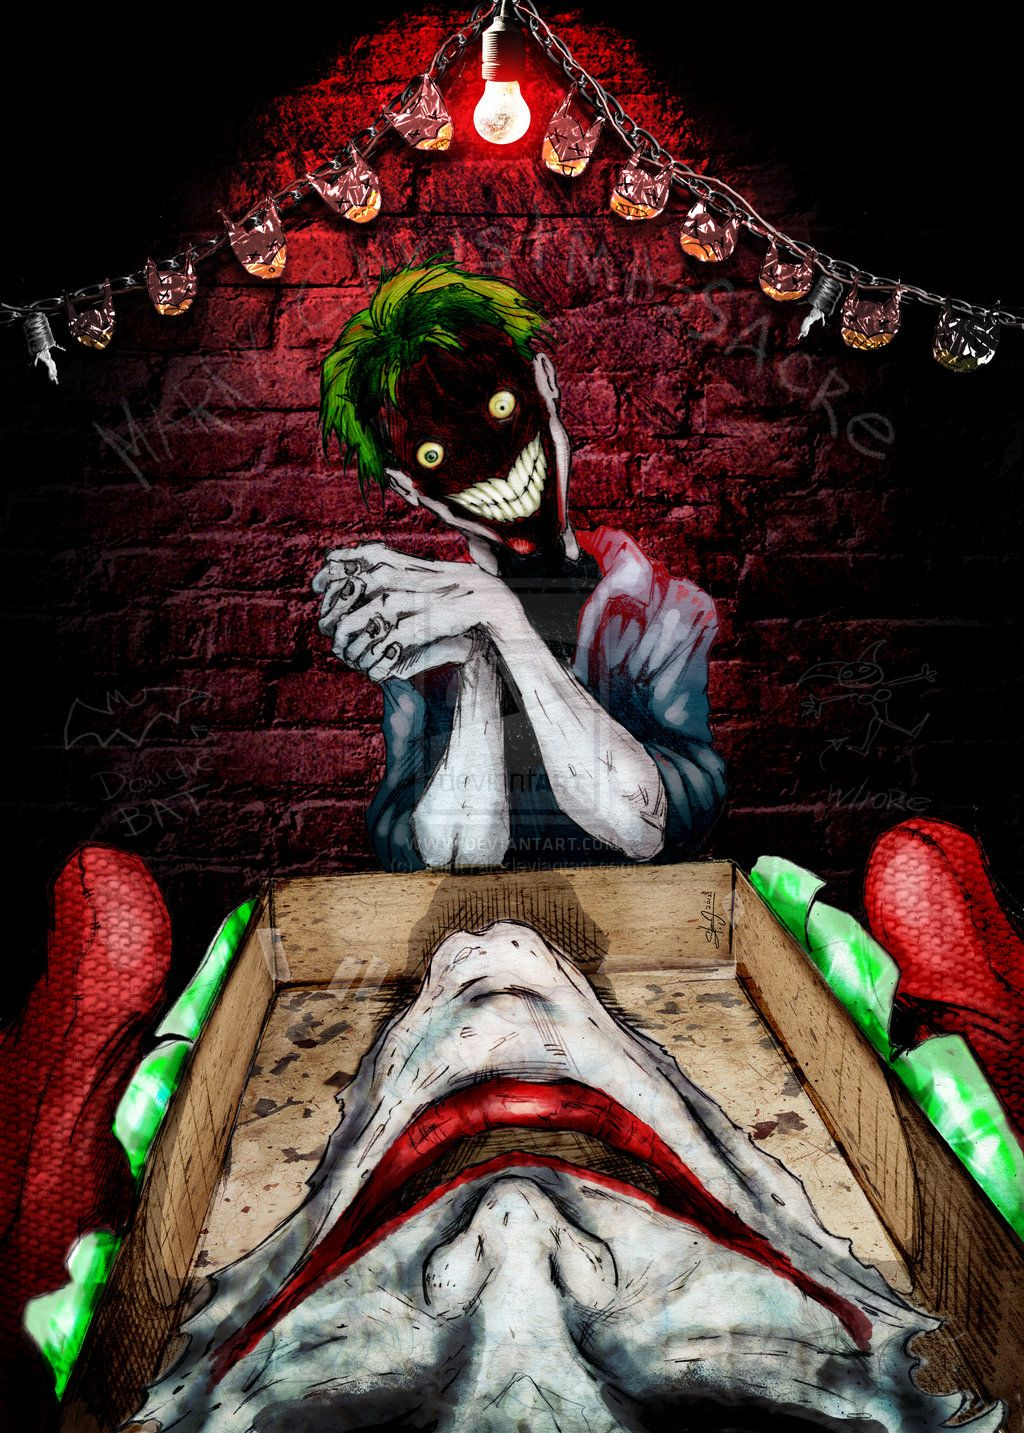 Joker Christmas Gift | Coringa | Pinterest | Joker, Christmas gifts ...